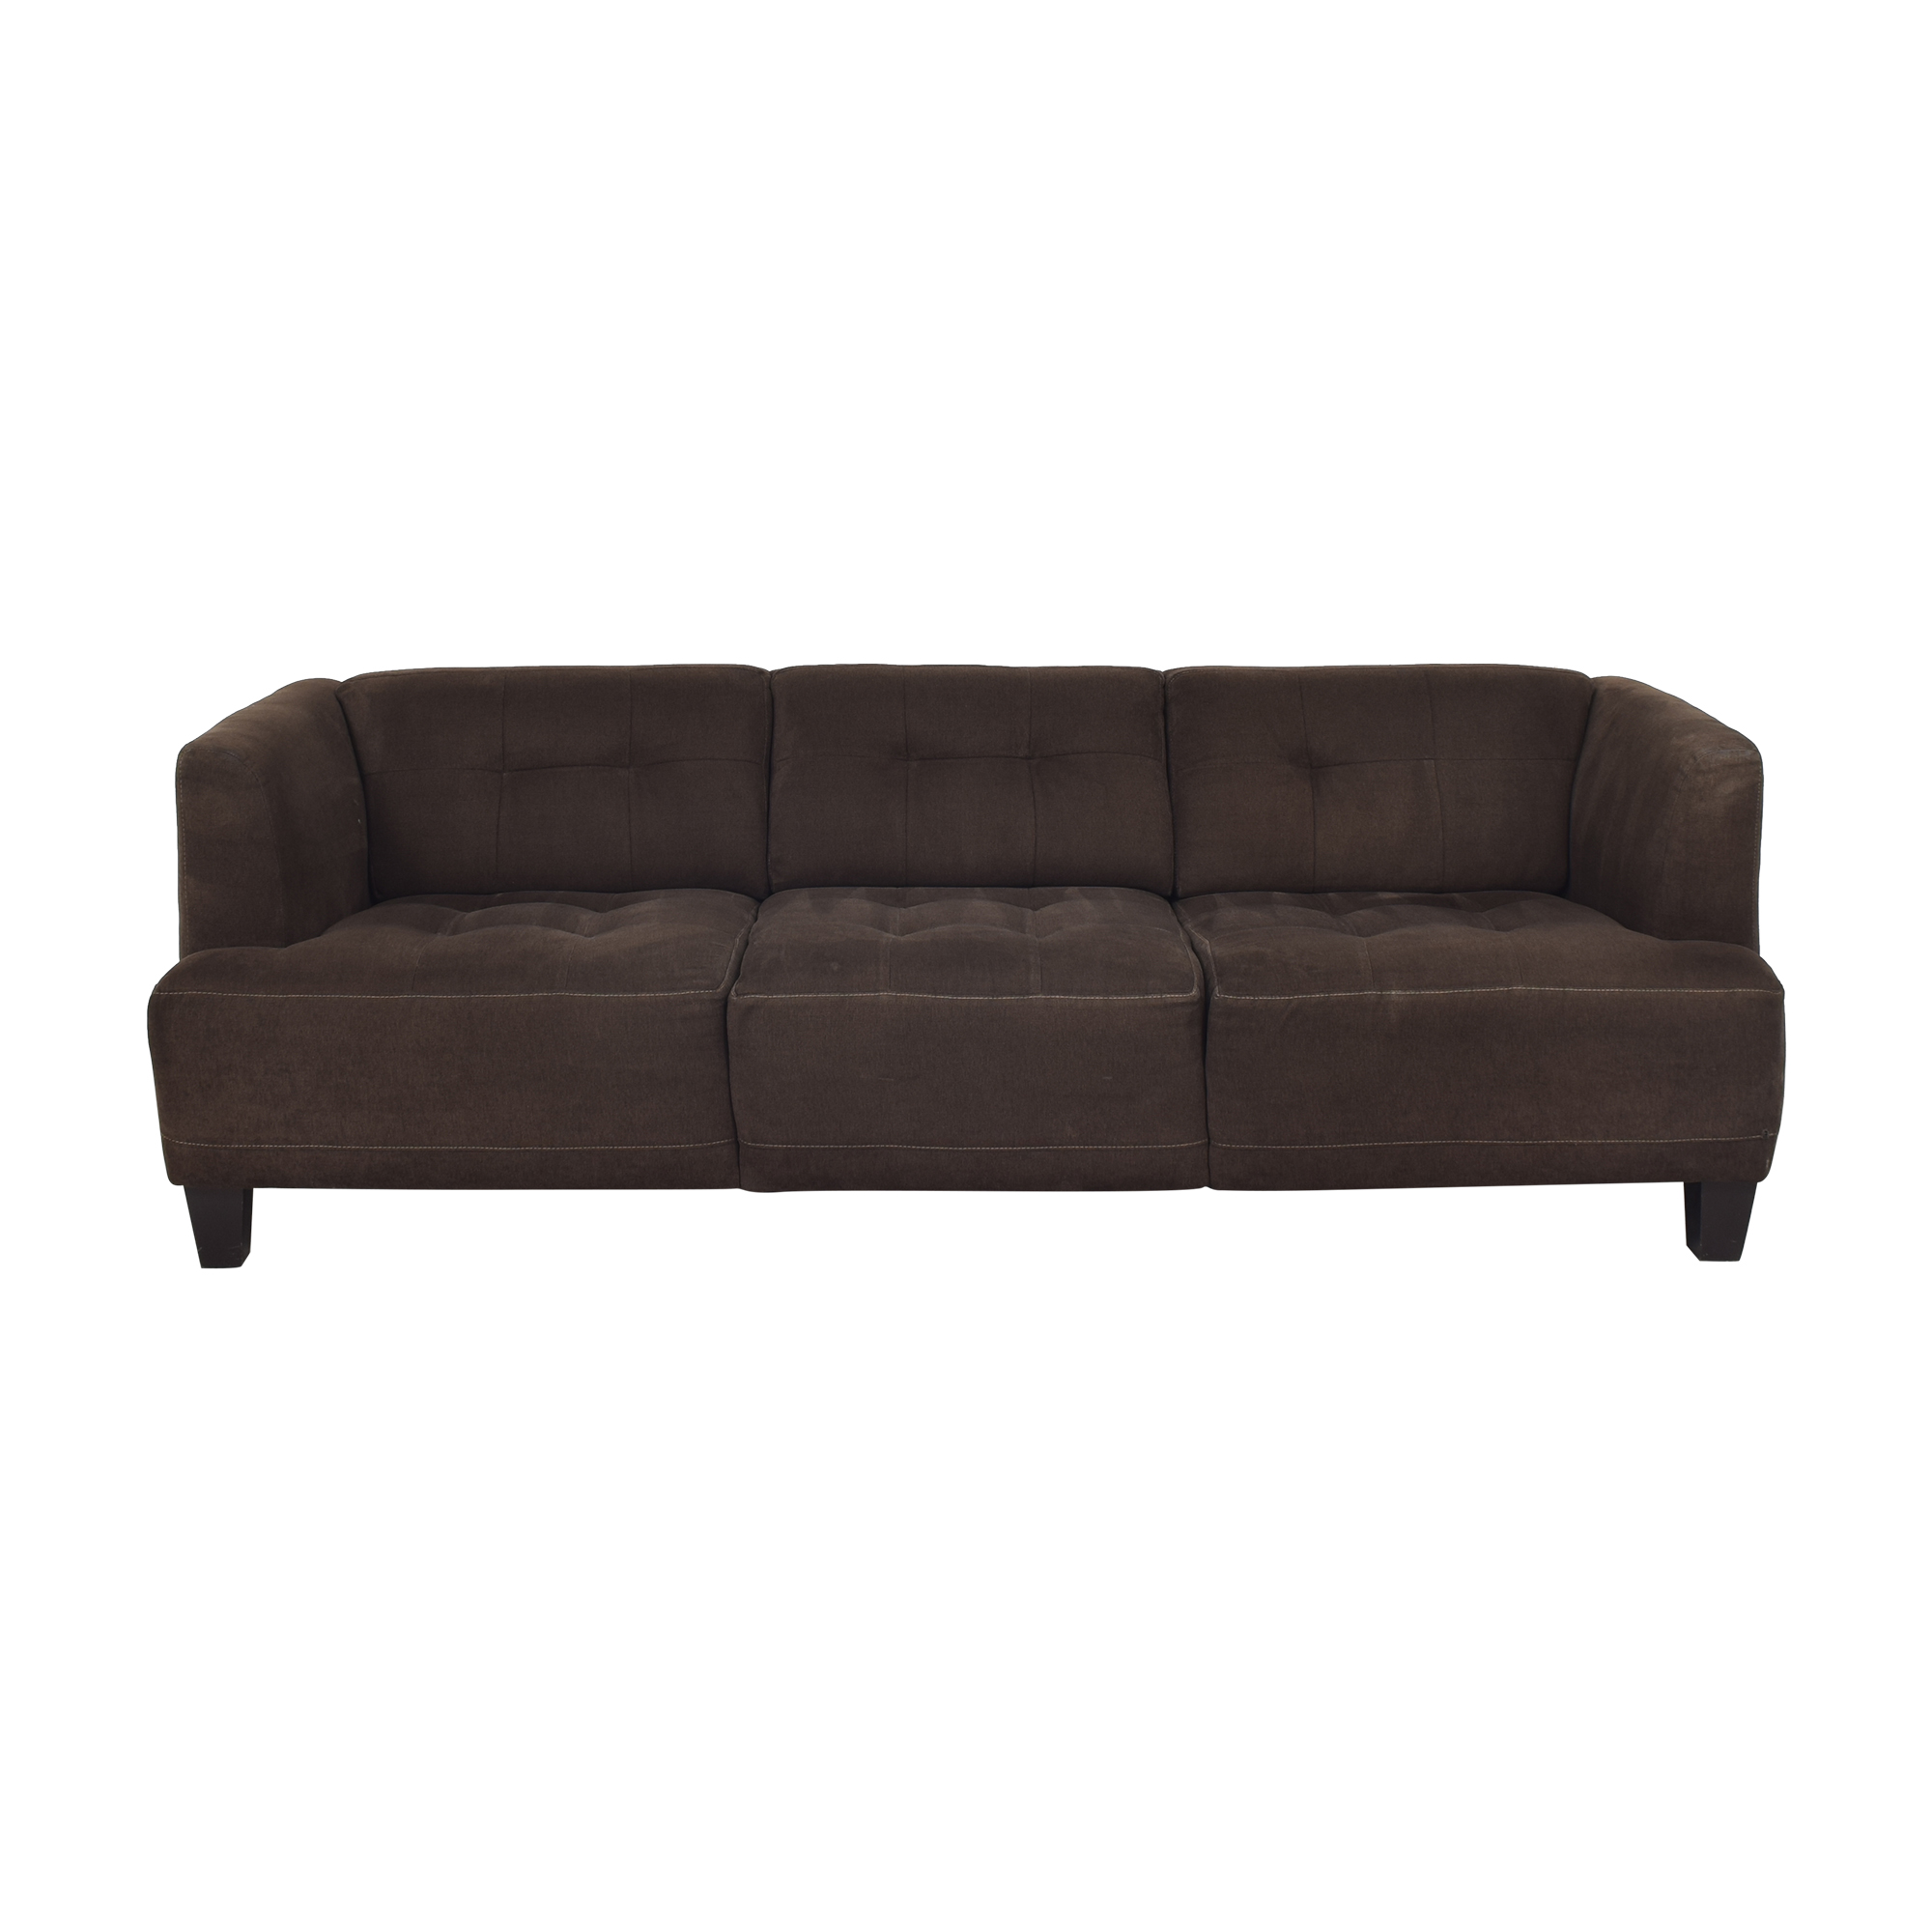 Macy's Macy's Jonathan Louis Three Cushion Sofa coupon